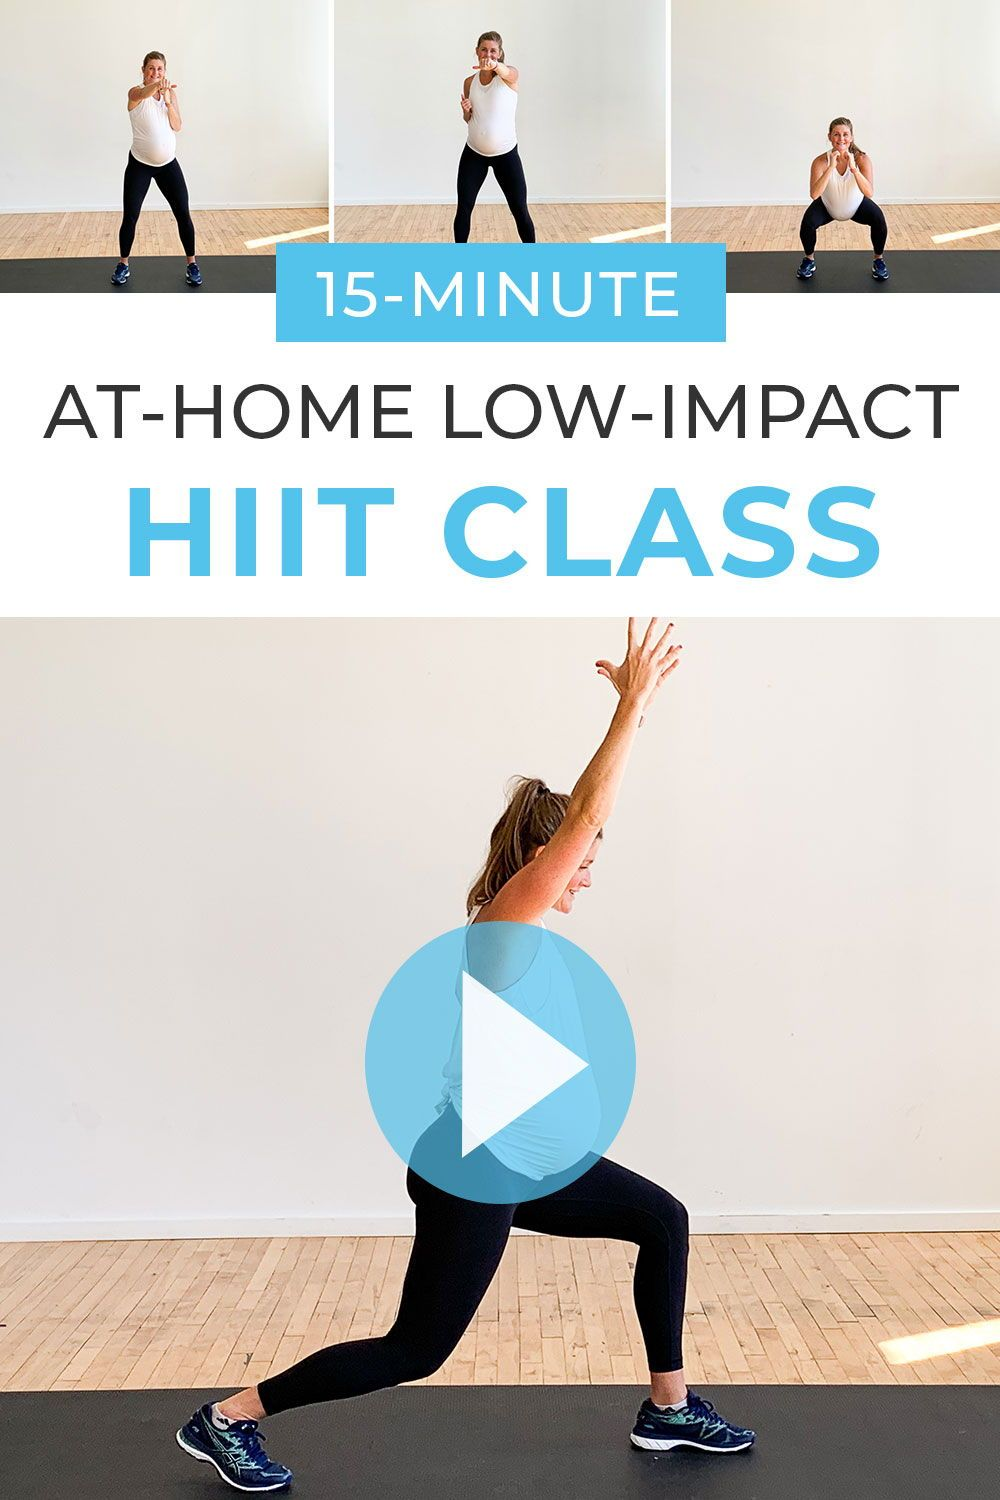 This low impact cardio BODYWEIGHT WORKOUT can be done anytime, anywhere. You'll get a full body cardio workout done in just 15-minutes -- all you have to do is press 'play' and follow along! Plus, this is a great pregnancy workout, post-baby workout, or beginner workout at home!